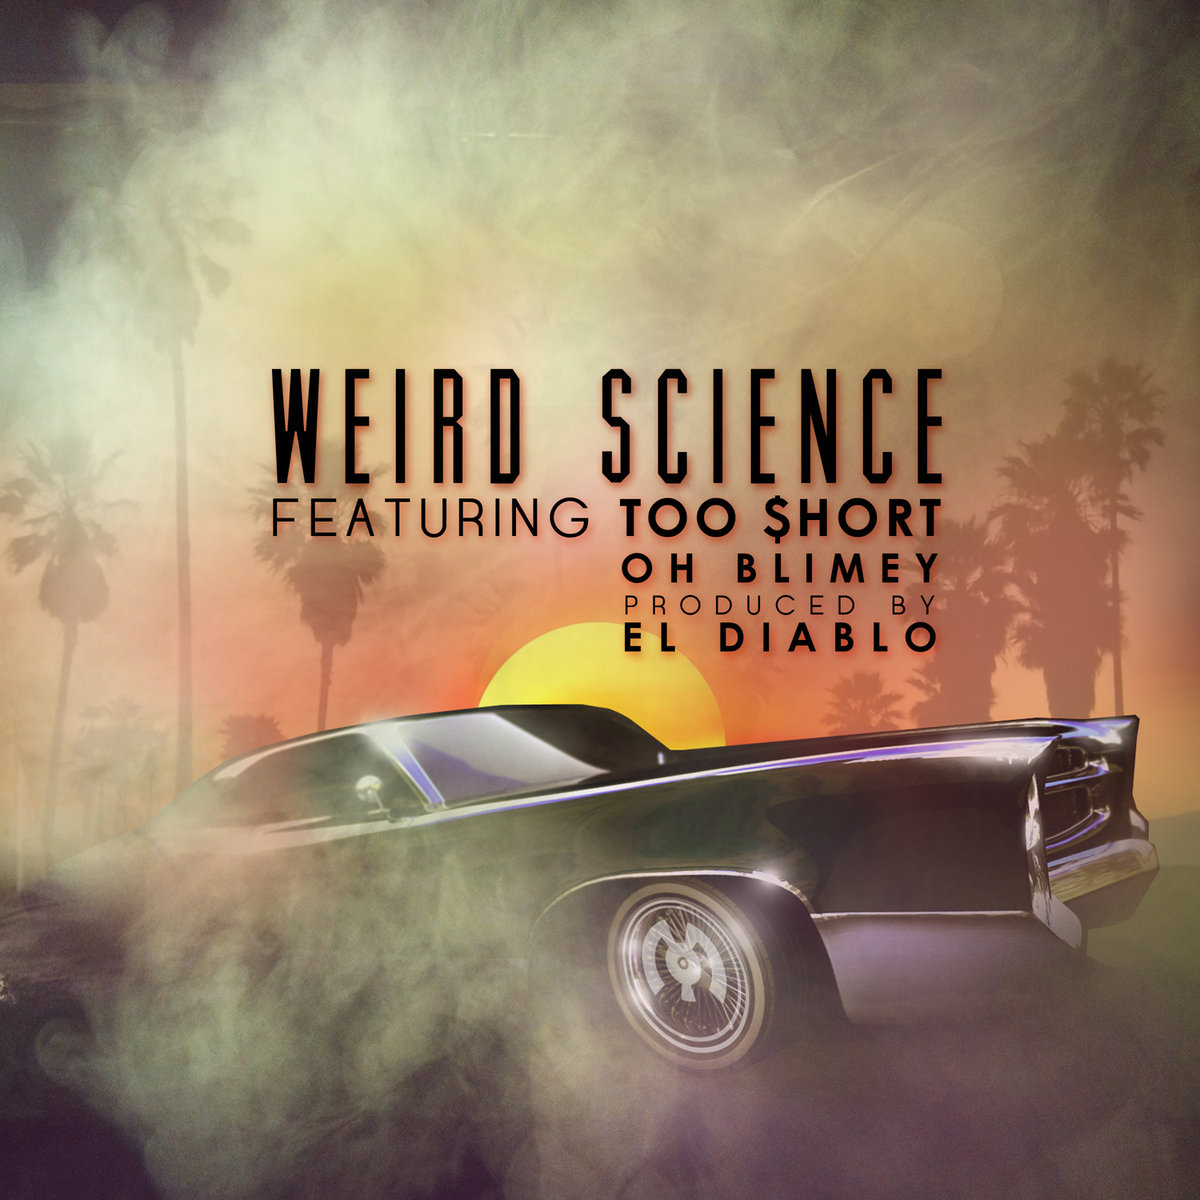 Too $hort, Oh Blimey, El Diablo - Weird Science (Psymbionic & Wolf-e-Wolf Remix) @ 'Weird Science' album (electronic, dubstep)